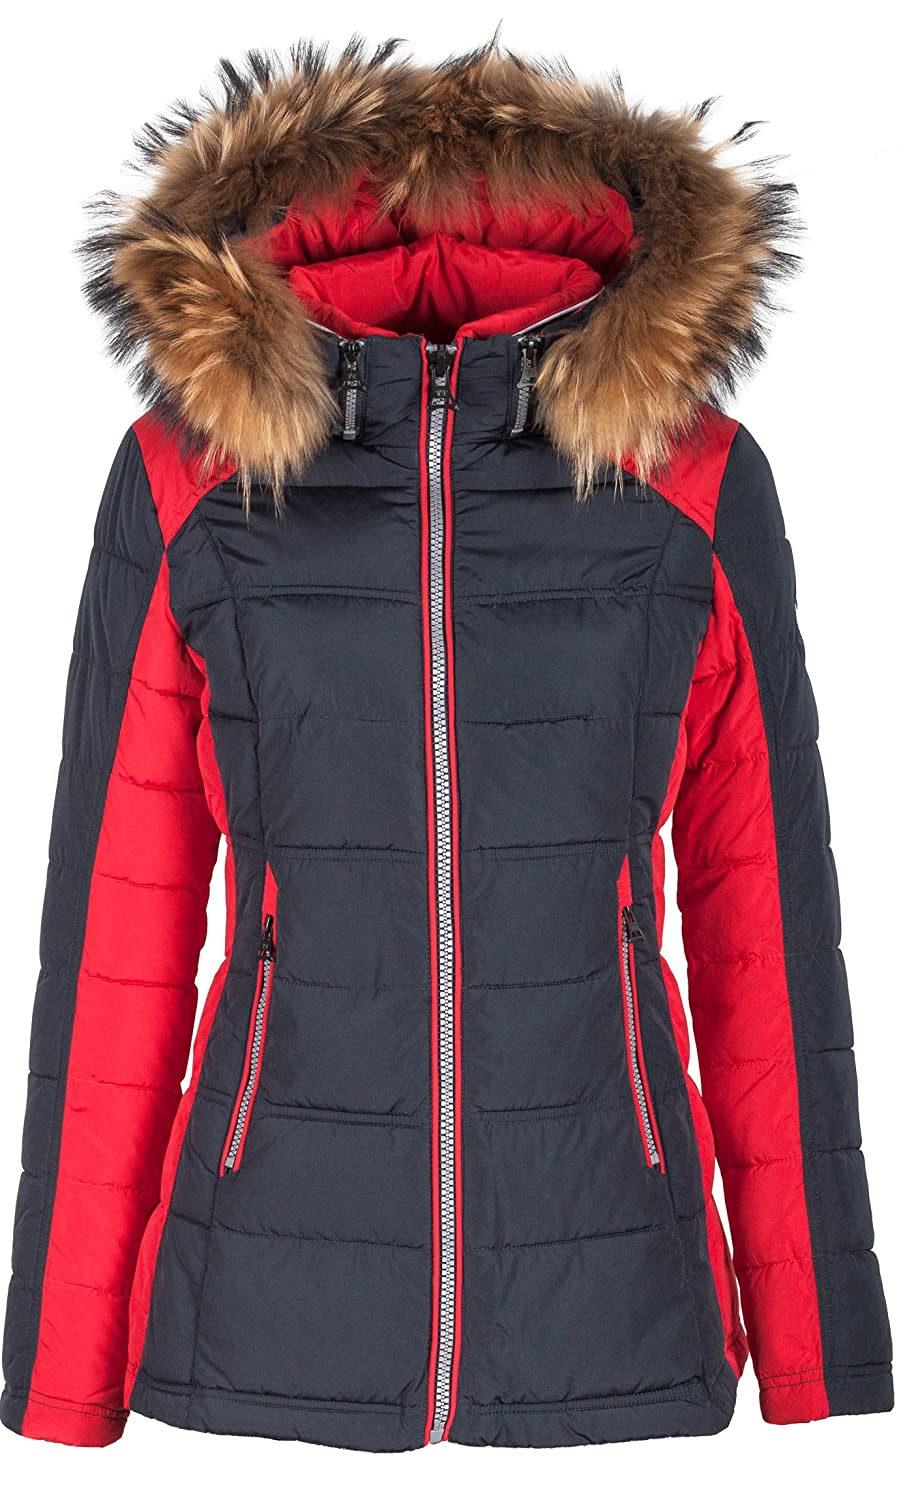 5M99 Damen Winterjacke Skijacke in Daunen-Optik